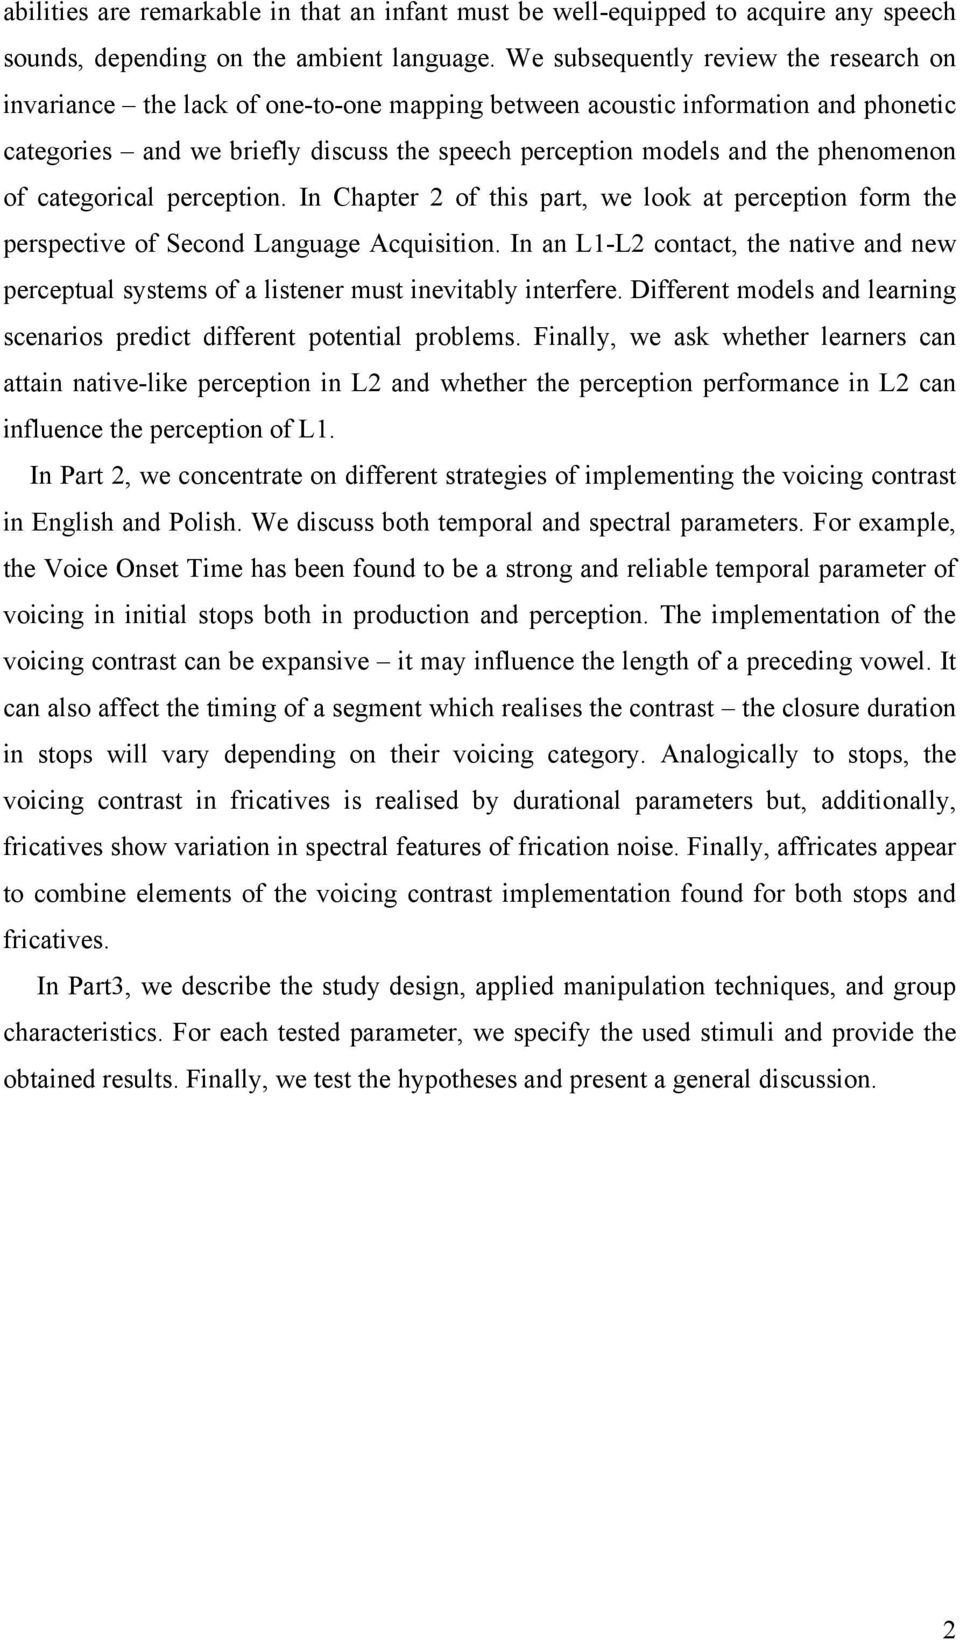 phenomenon of categorical perception. In Chapter 2 of this part, we look at perception form the perspective of Second Language Acquisition.